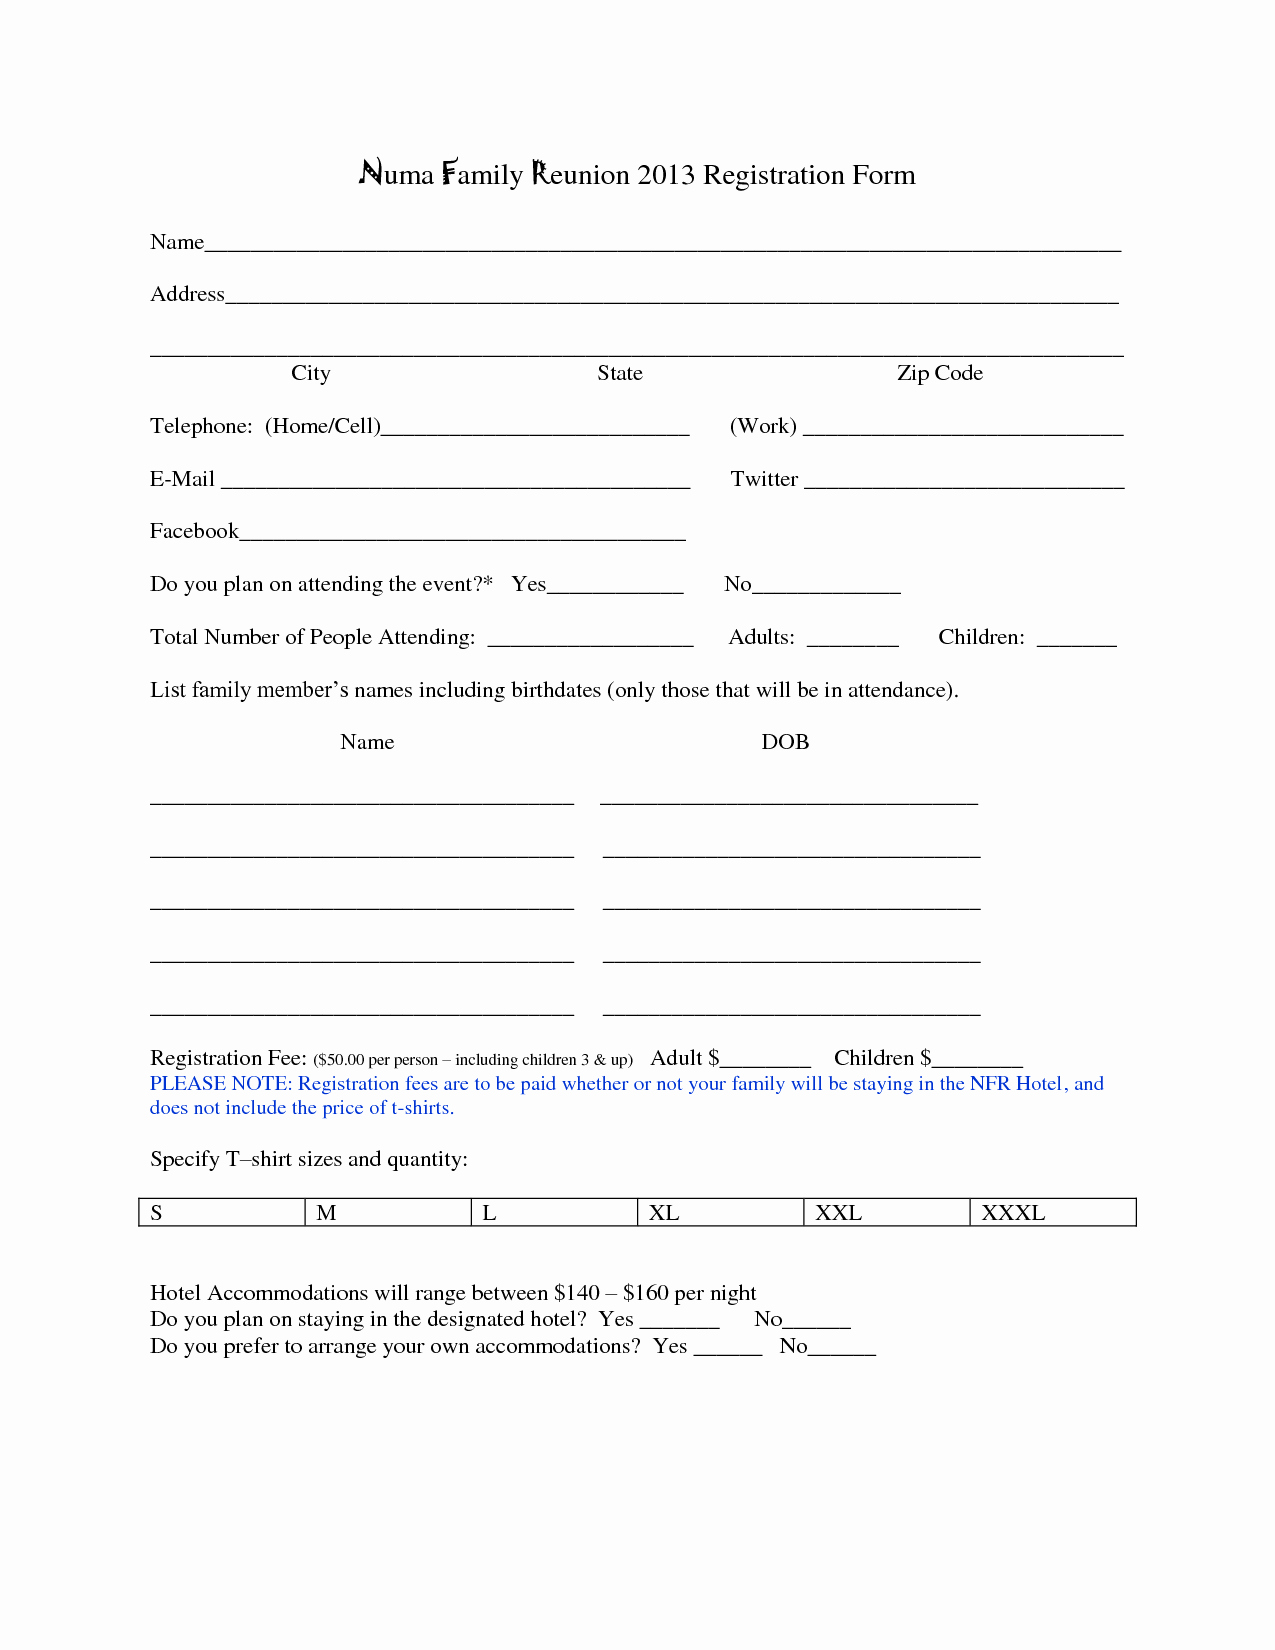 Registration form Template Word Inspirational 7 Best Of Family Reunion forms Printable Free